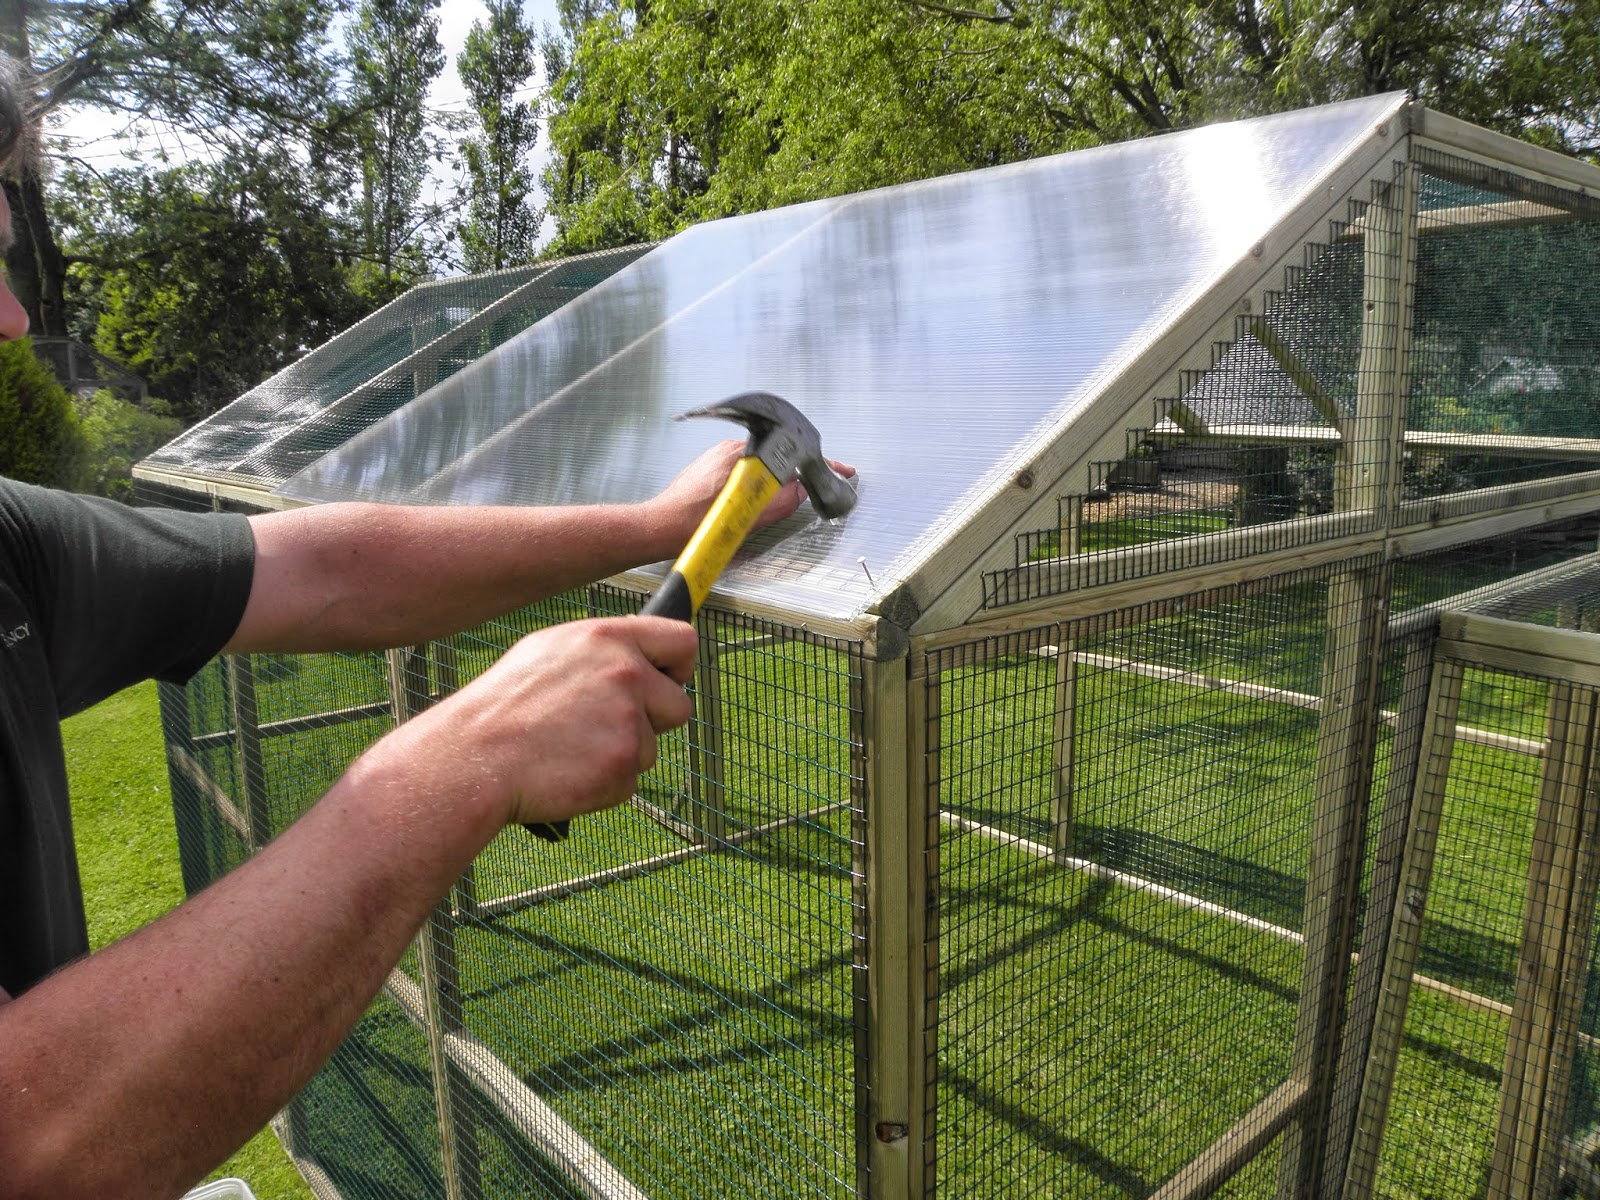 Weather Protection for a Poultry Protection Pen